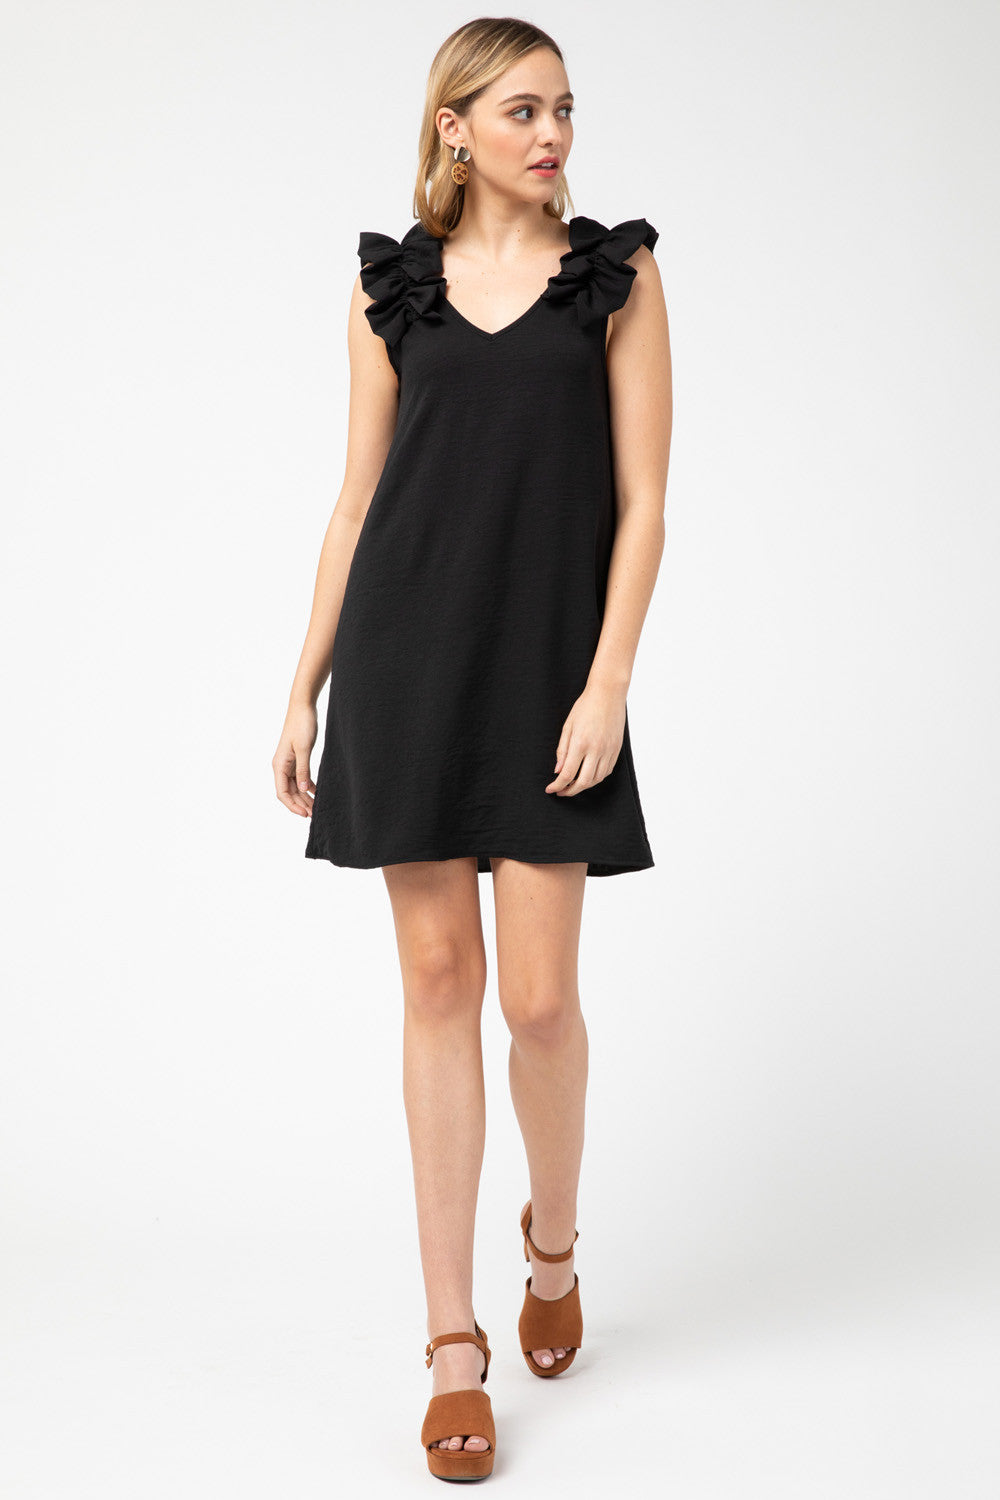 Solid sleeveless v-neck dress featuring ruffle detail at shoulder